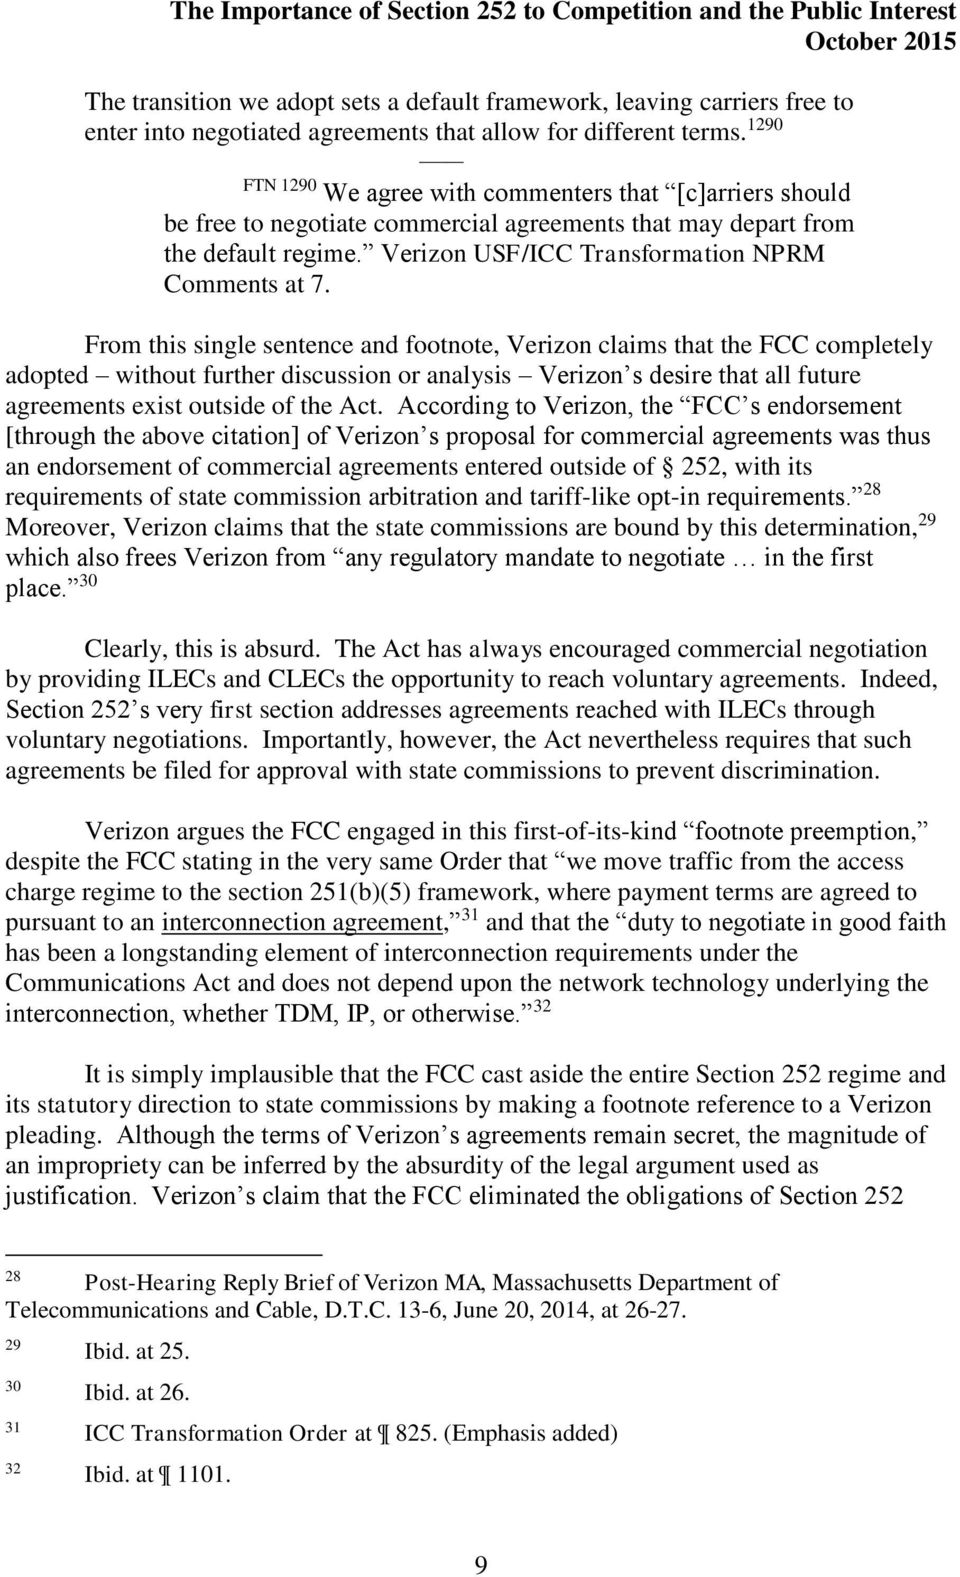 From this single sentence and footnote, Verizon claims that the FCC completely adopted without further discussion or analysis Verizon s desire that all future agreements exist outside of the Act.